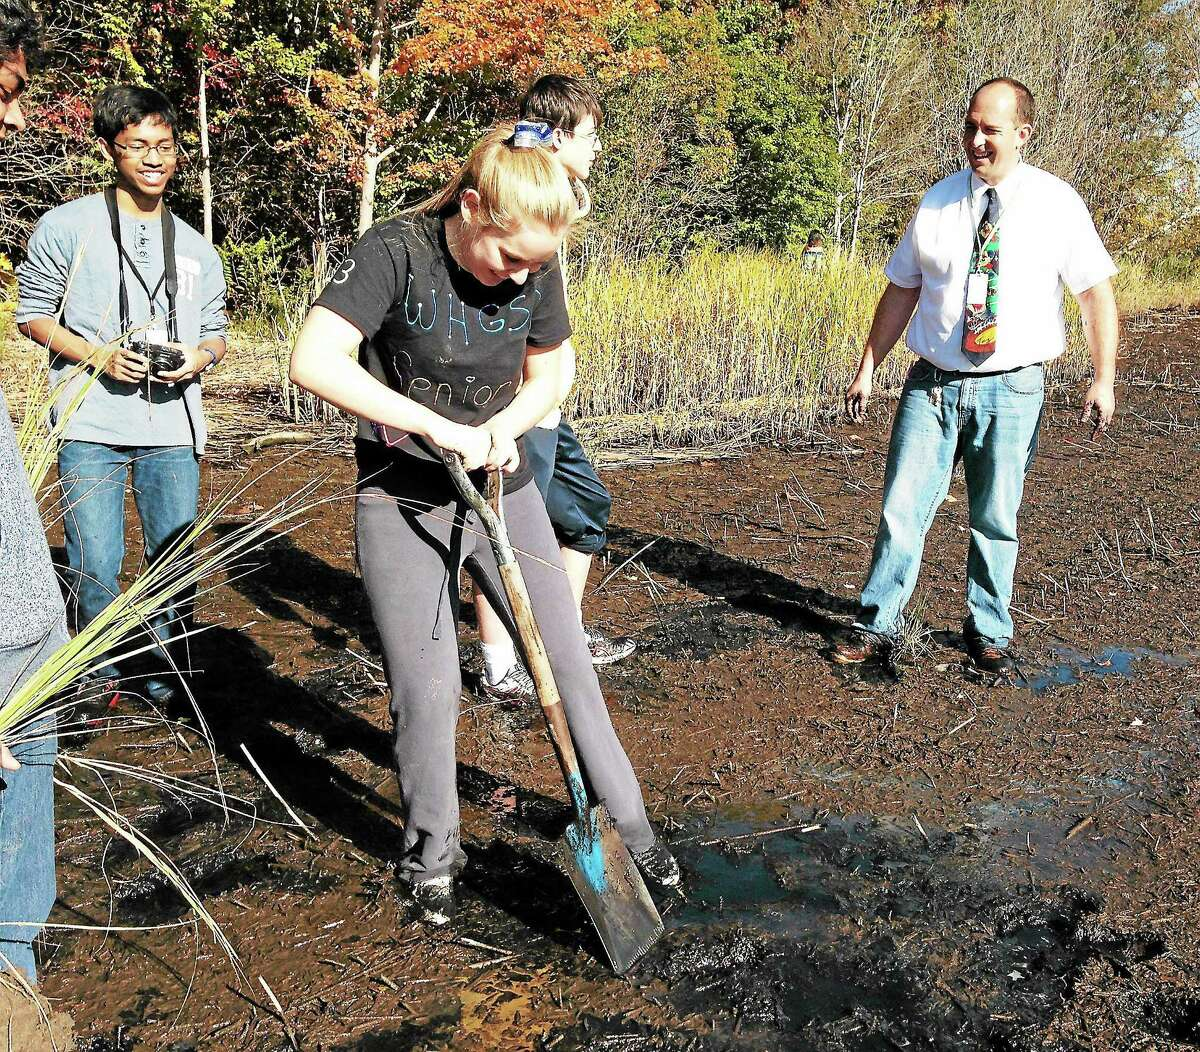 A West Haven High School advanced placement biology student digs a hole for a marsh grass plant in a marsh near the Cove River. The students will be monitoring restoration of the marsh throughout the year.